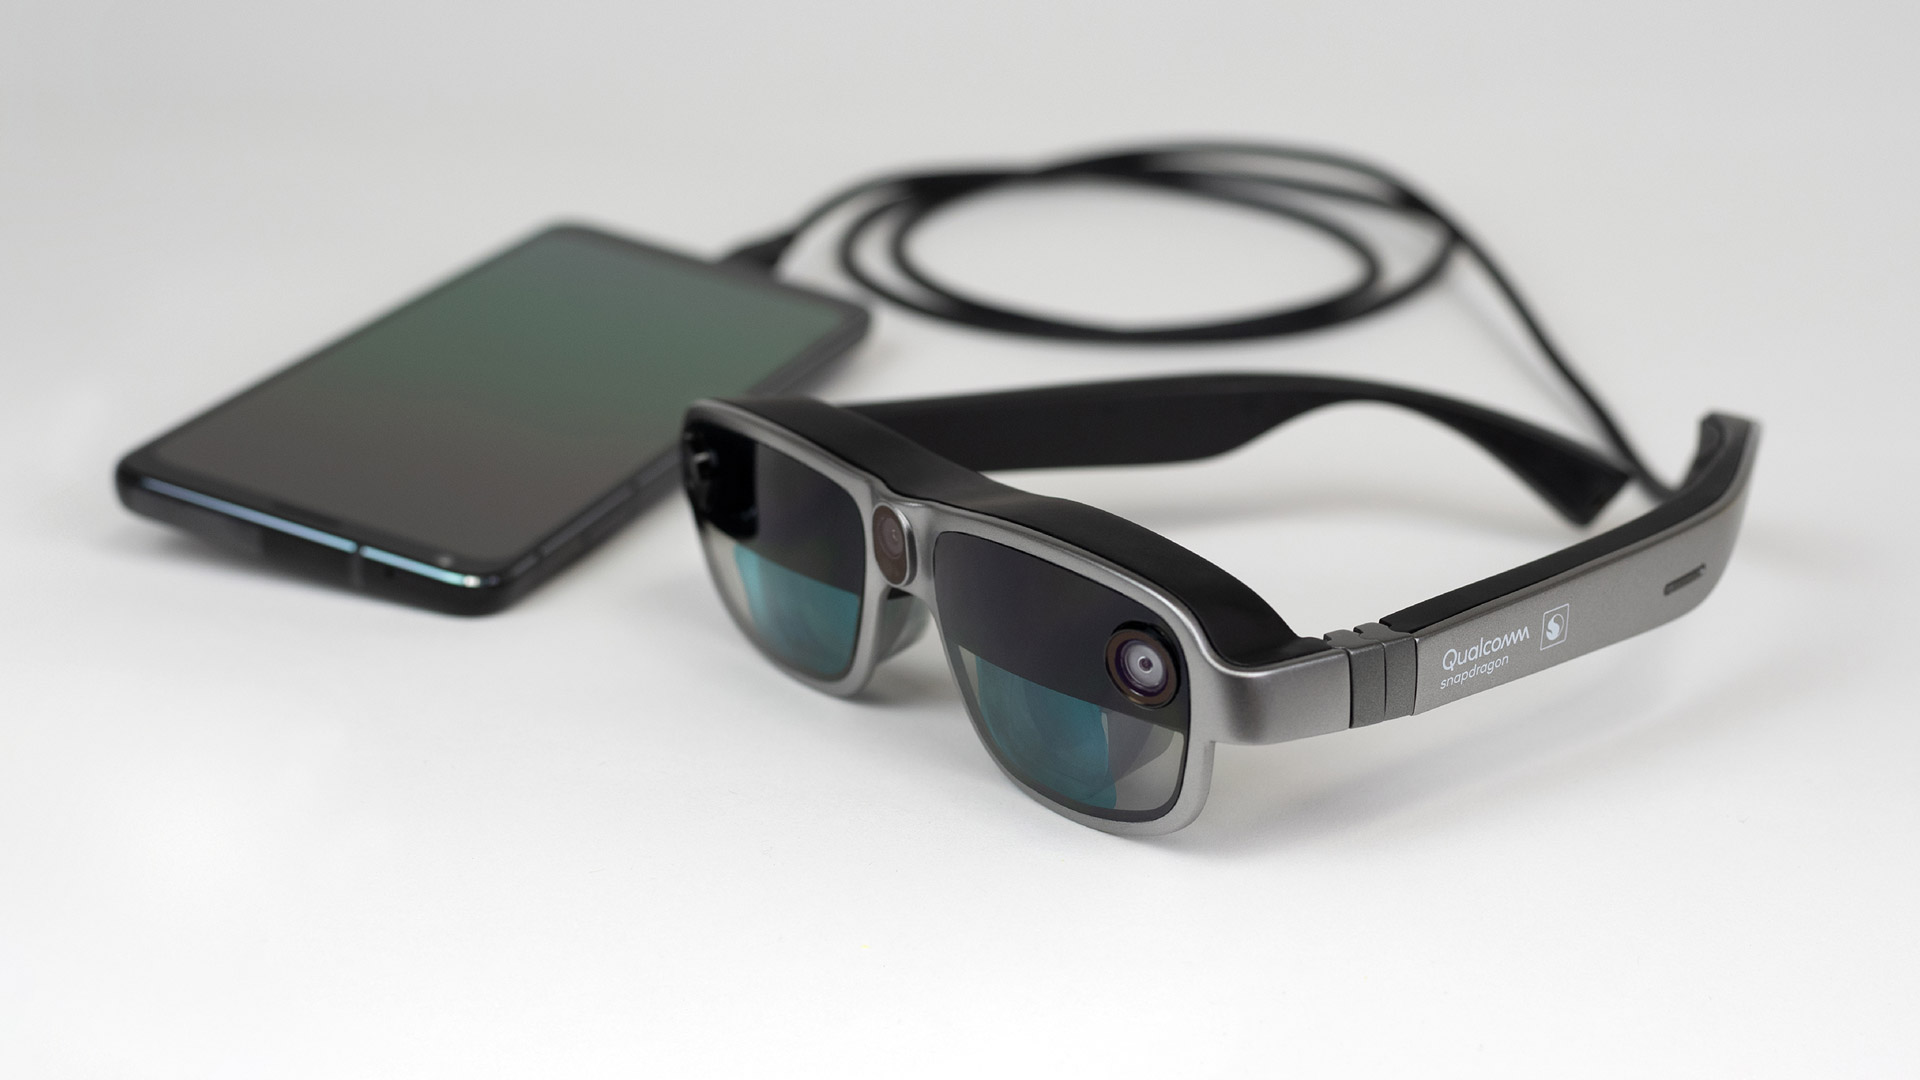 Qualcomm Announces Tethered AR 'Smart Viewer' Reference Design with Onboard Co-processing - Road to VR